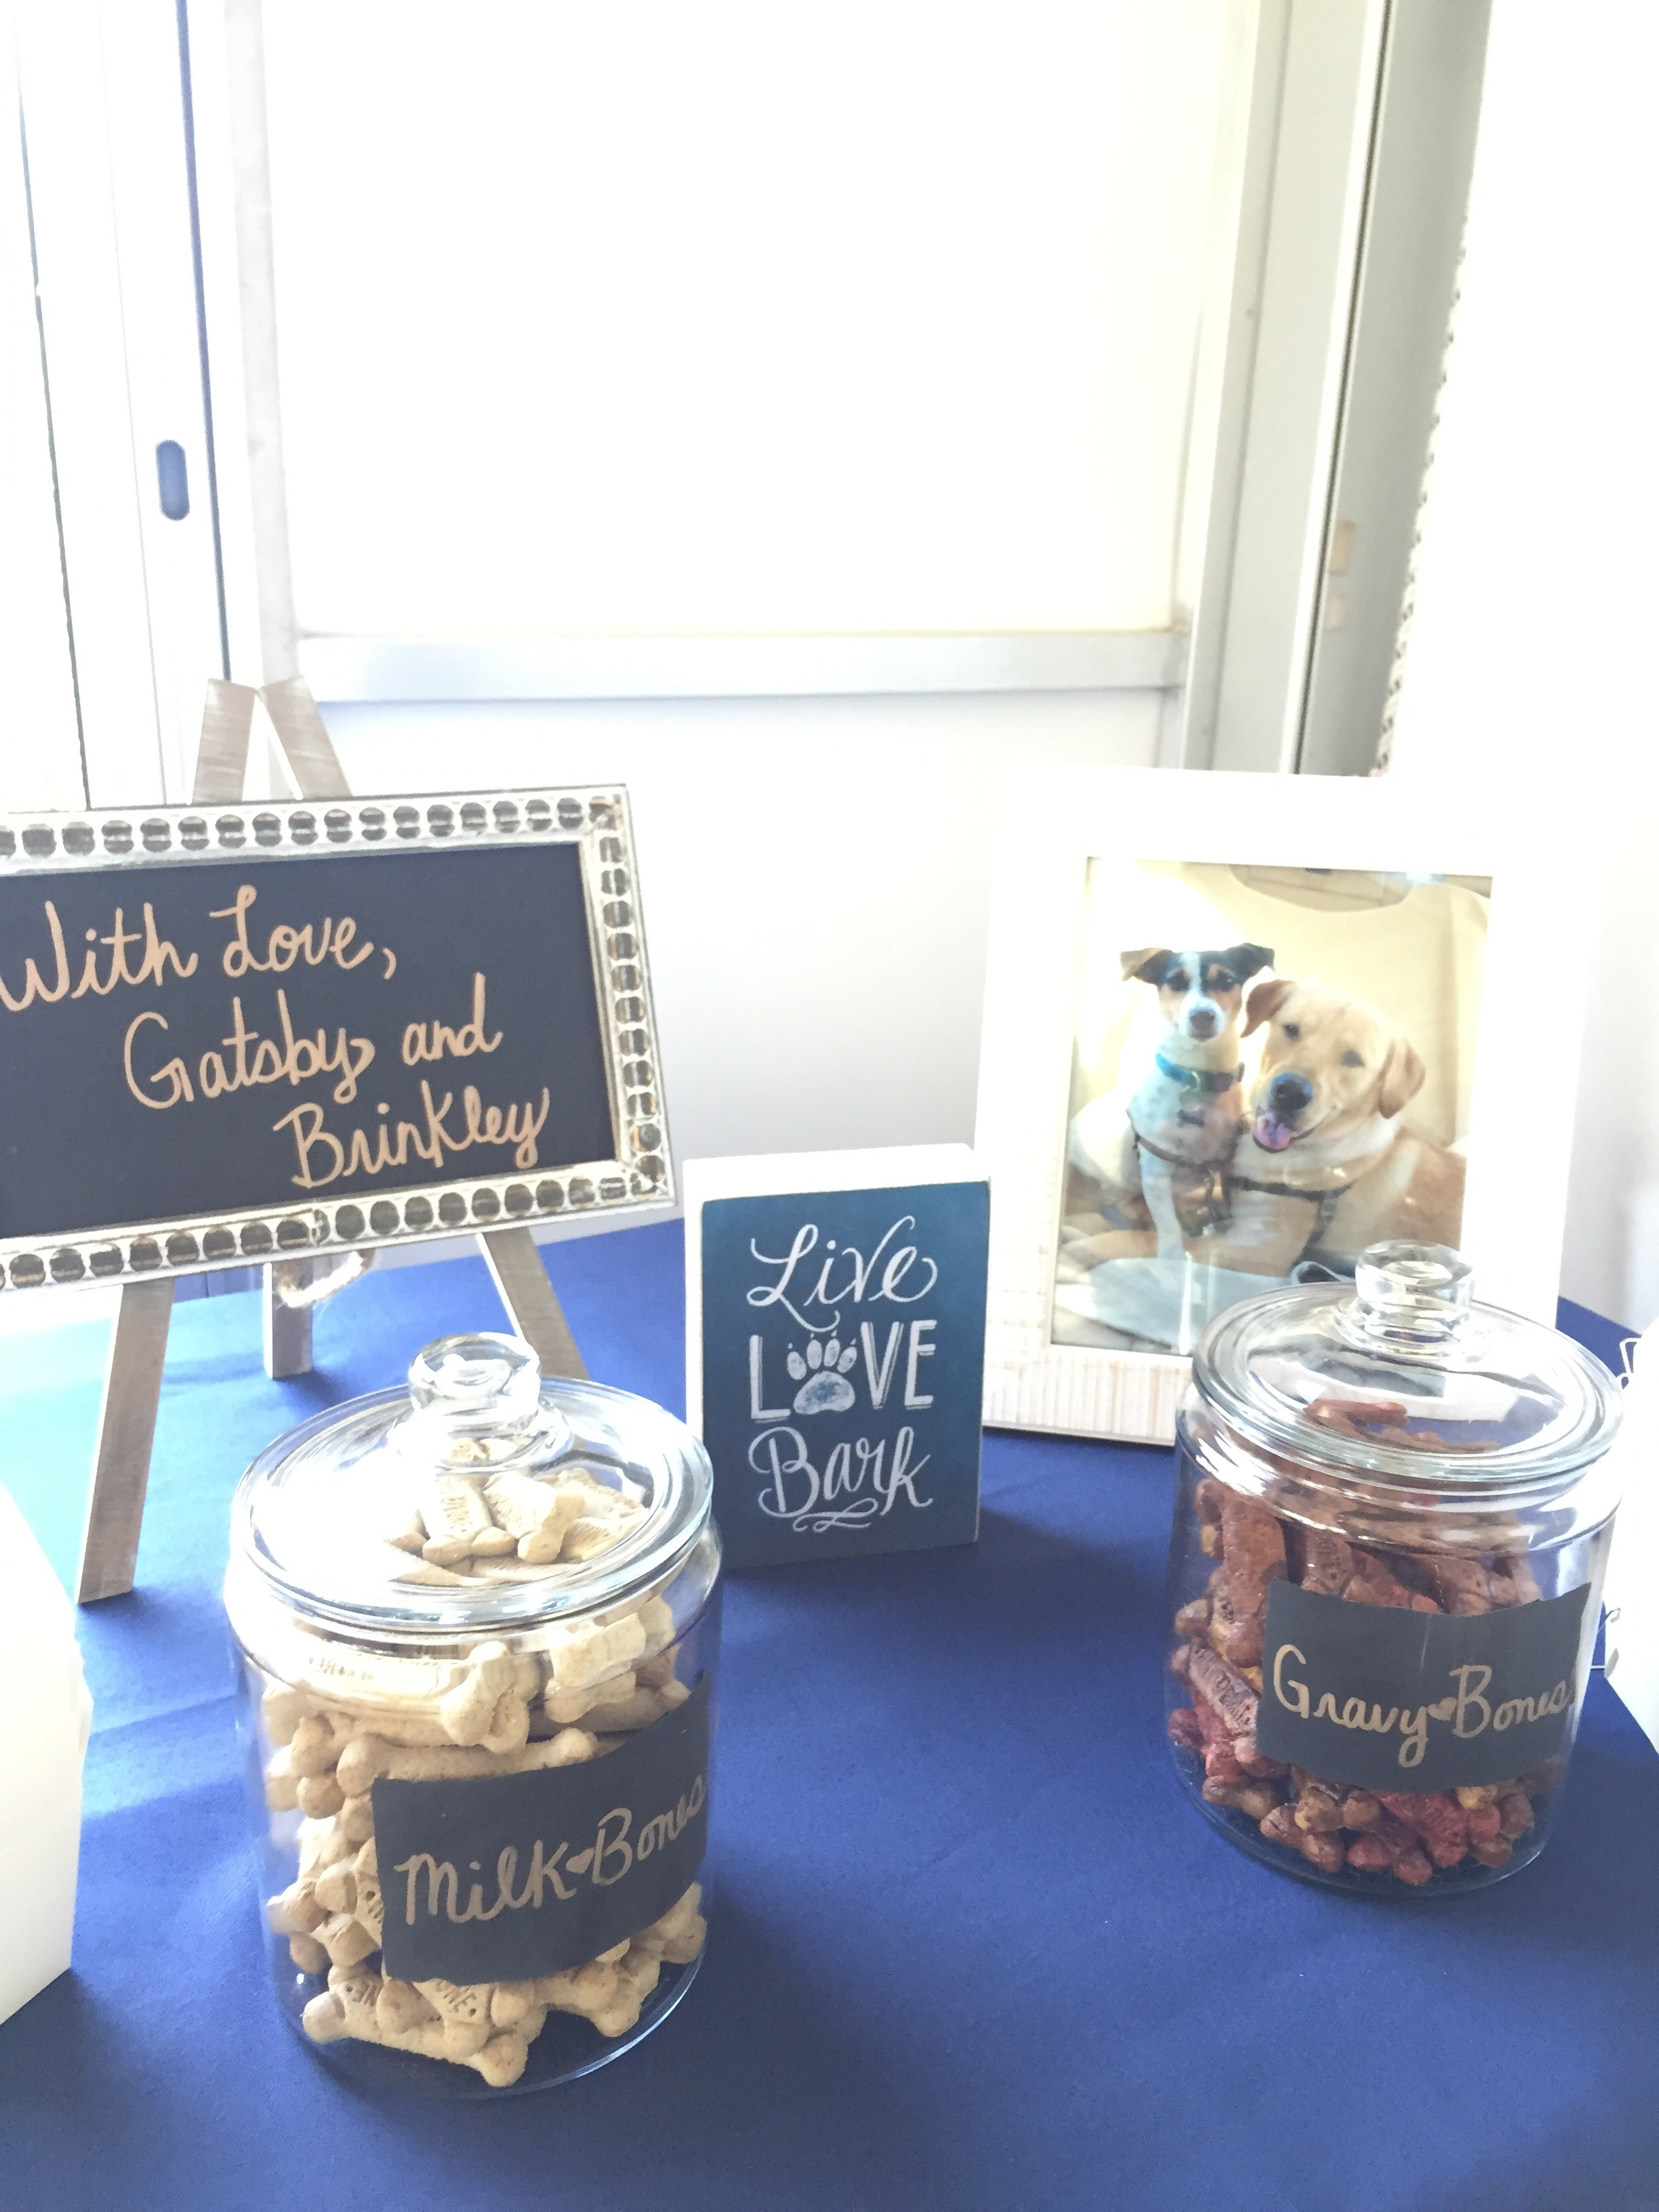 Ashley and Dan's pups sent their love with this doggie bone party favor bar. Woof!